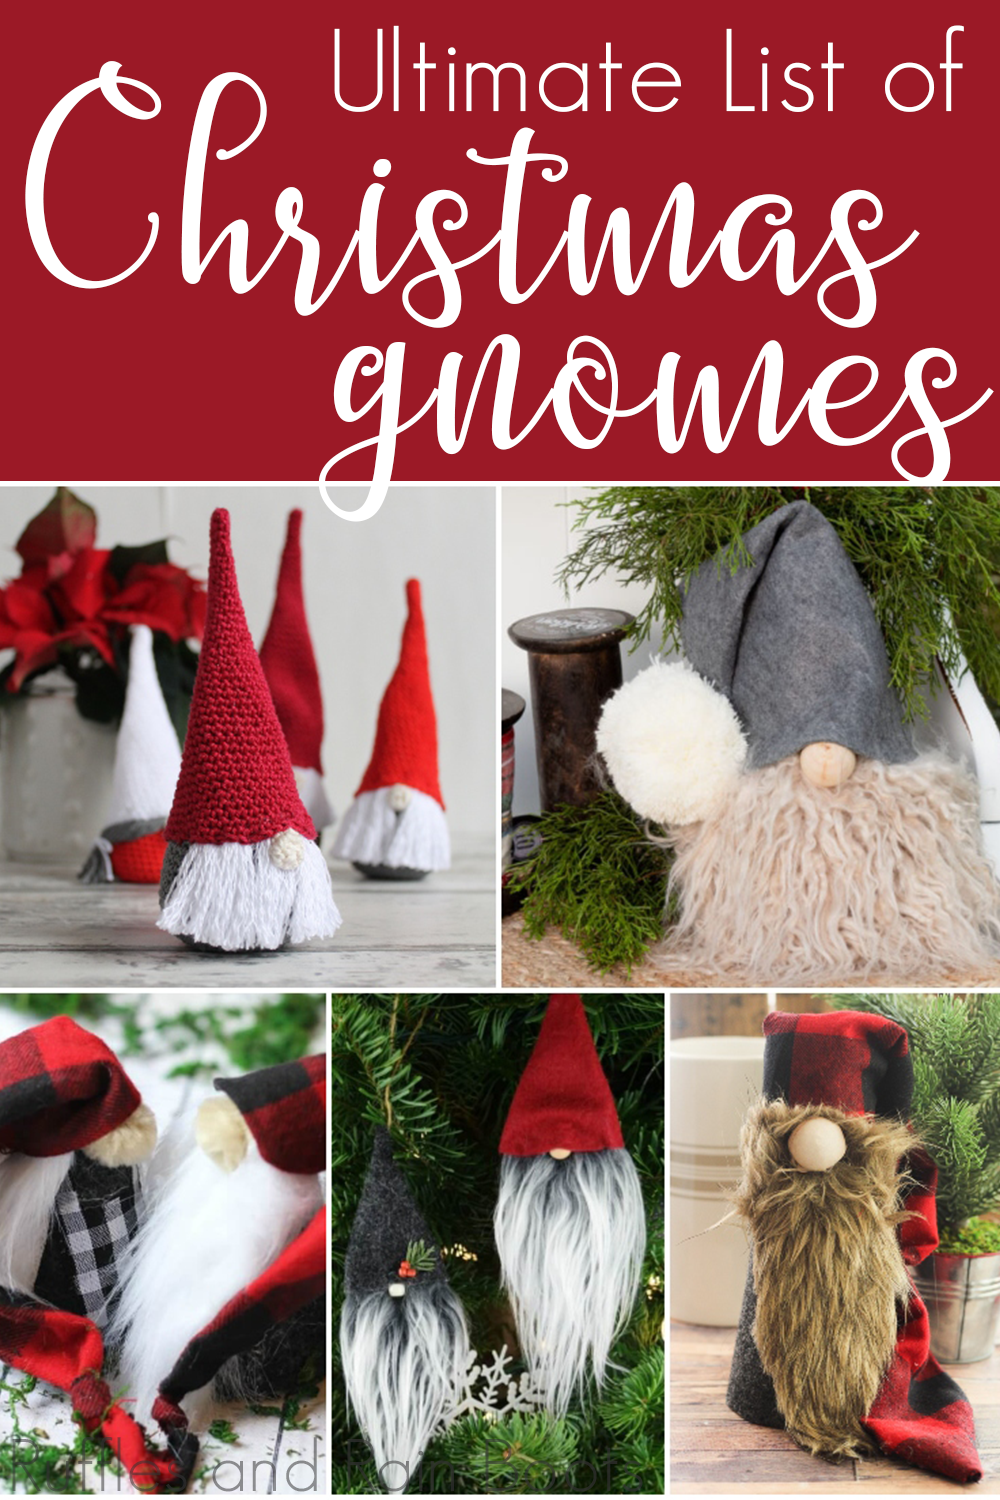 ultimate list of christmas gnome tutorials